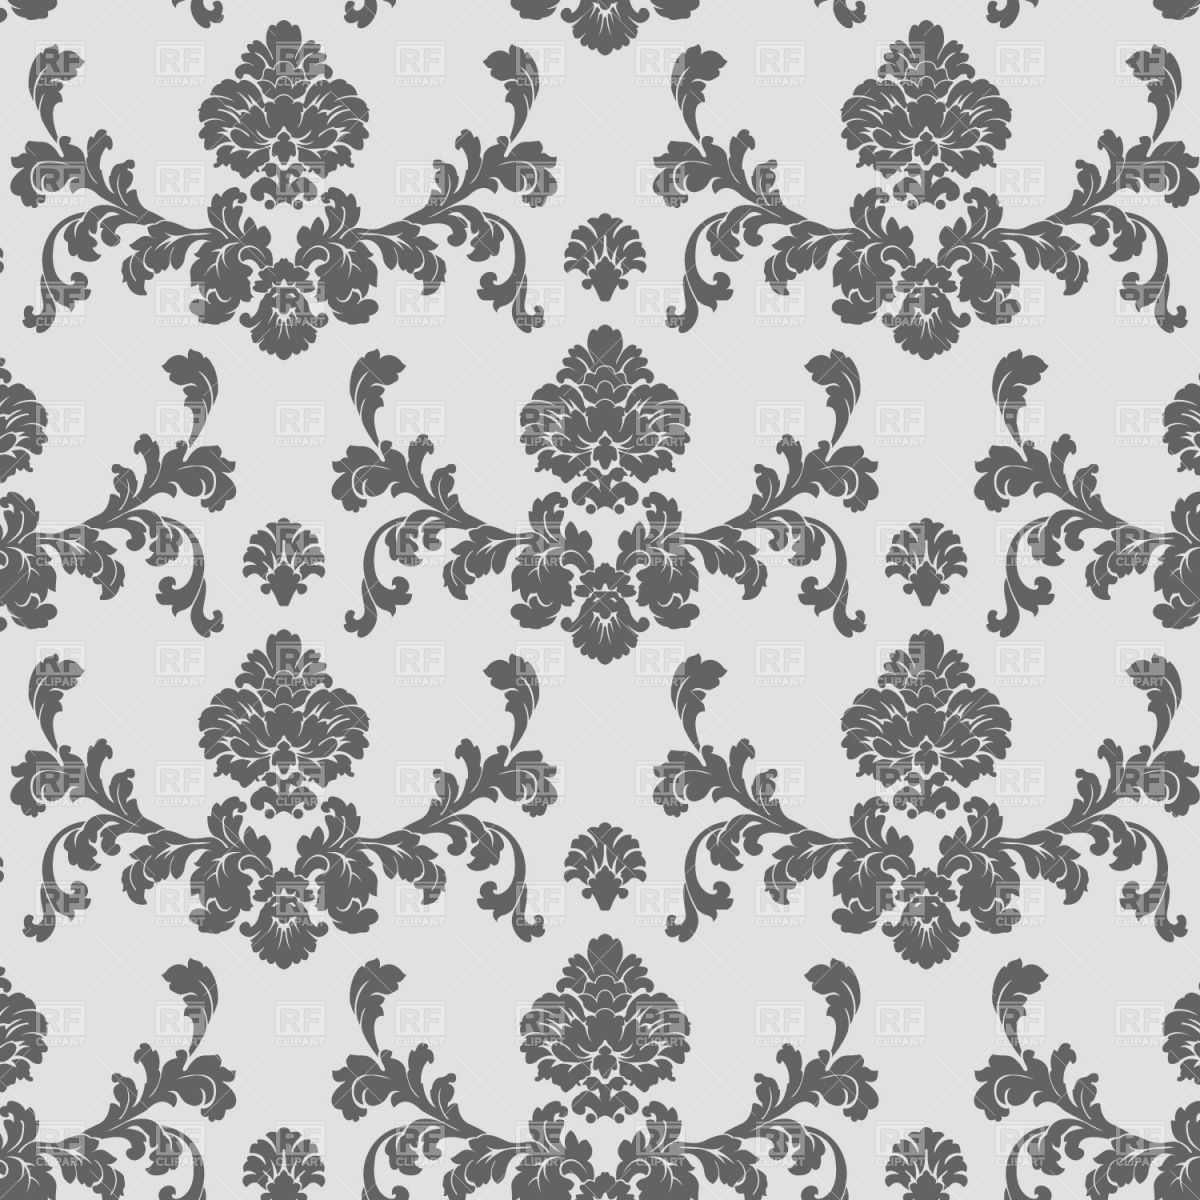 Classic Seamless Wallpaper Pattern Backgrounds Textures Abstract Download Royalty Free